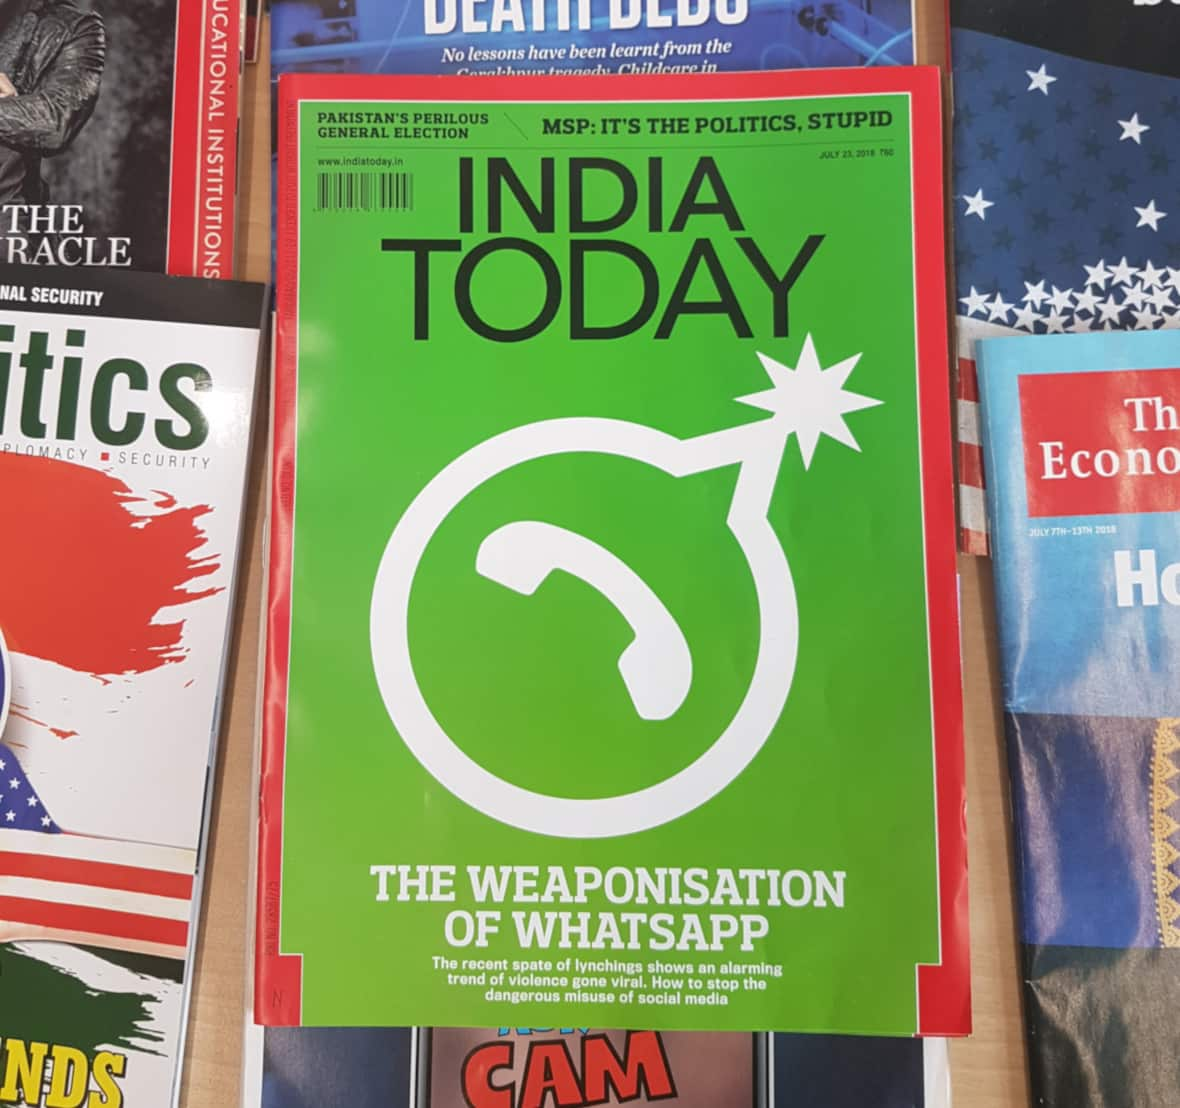 Cover of India Today with headline The Weaponisation of WhatsApp